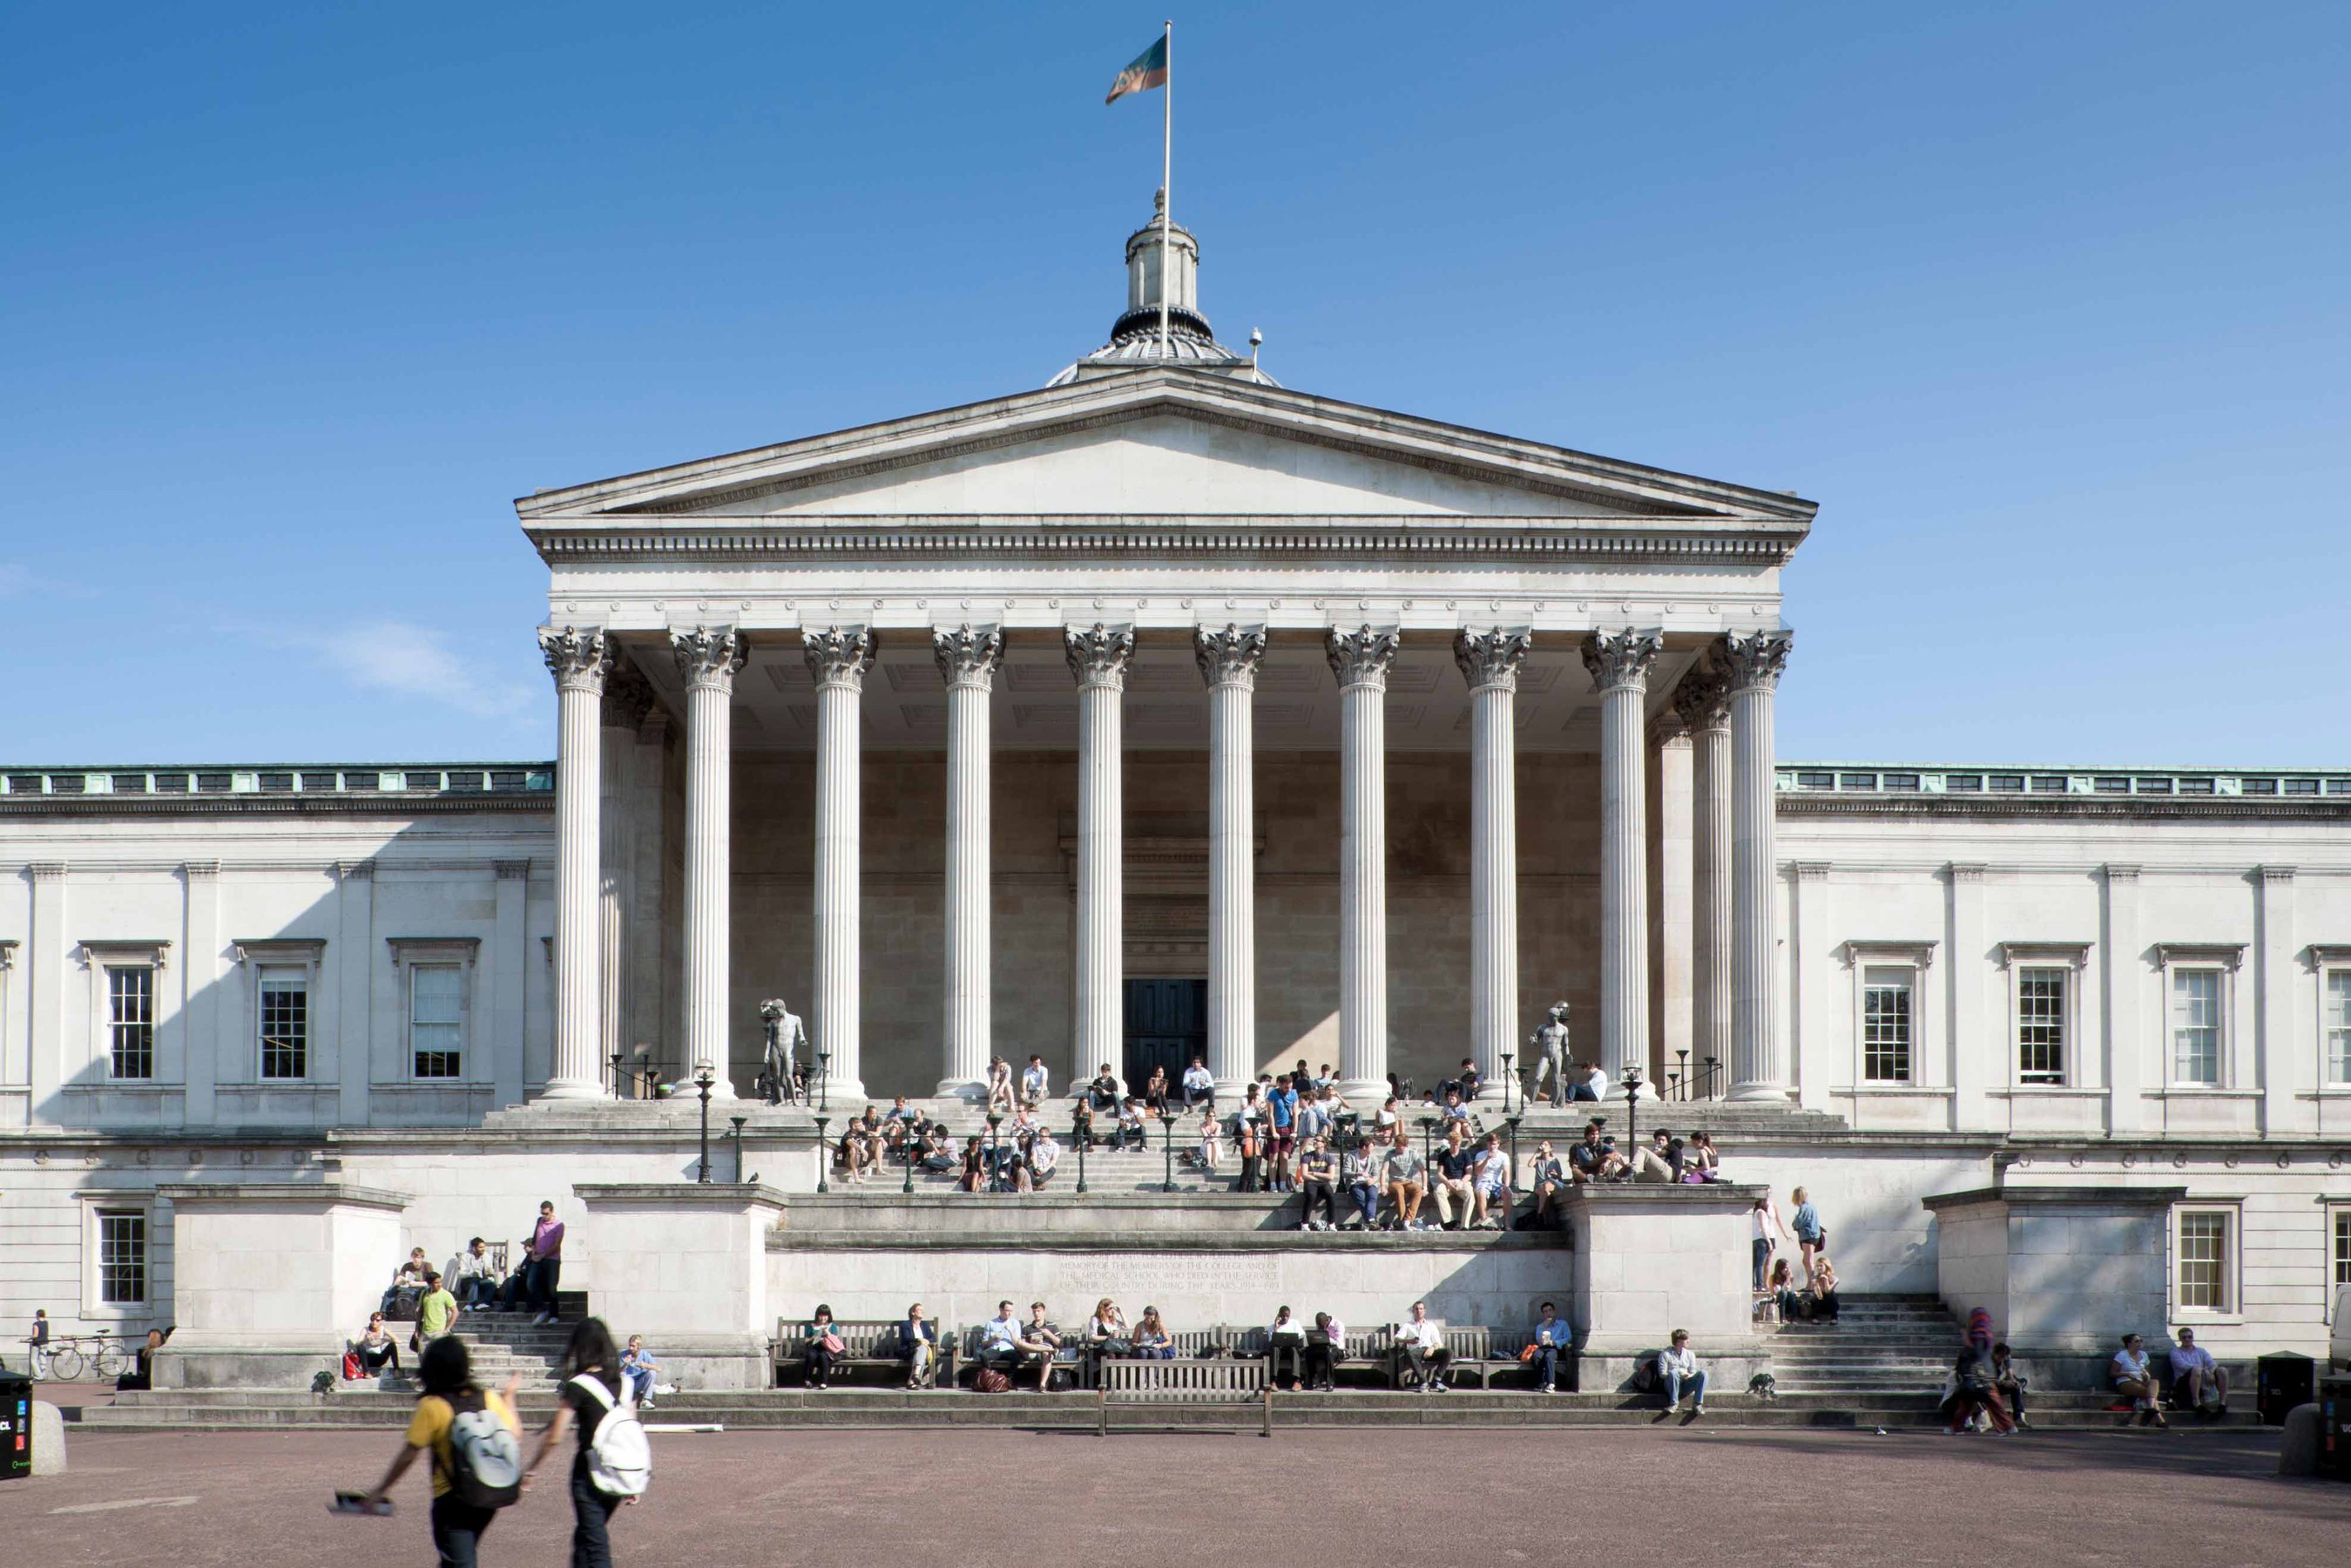 Students socializing and reading on the steps and quad at UCL's Main Building